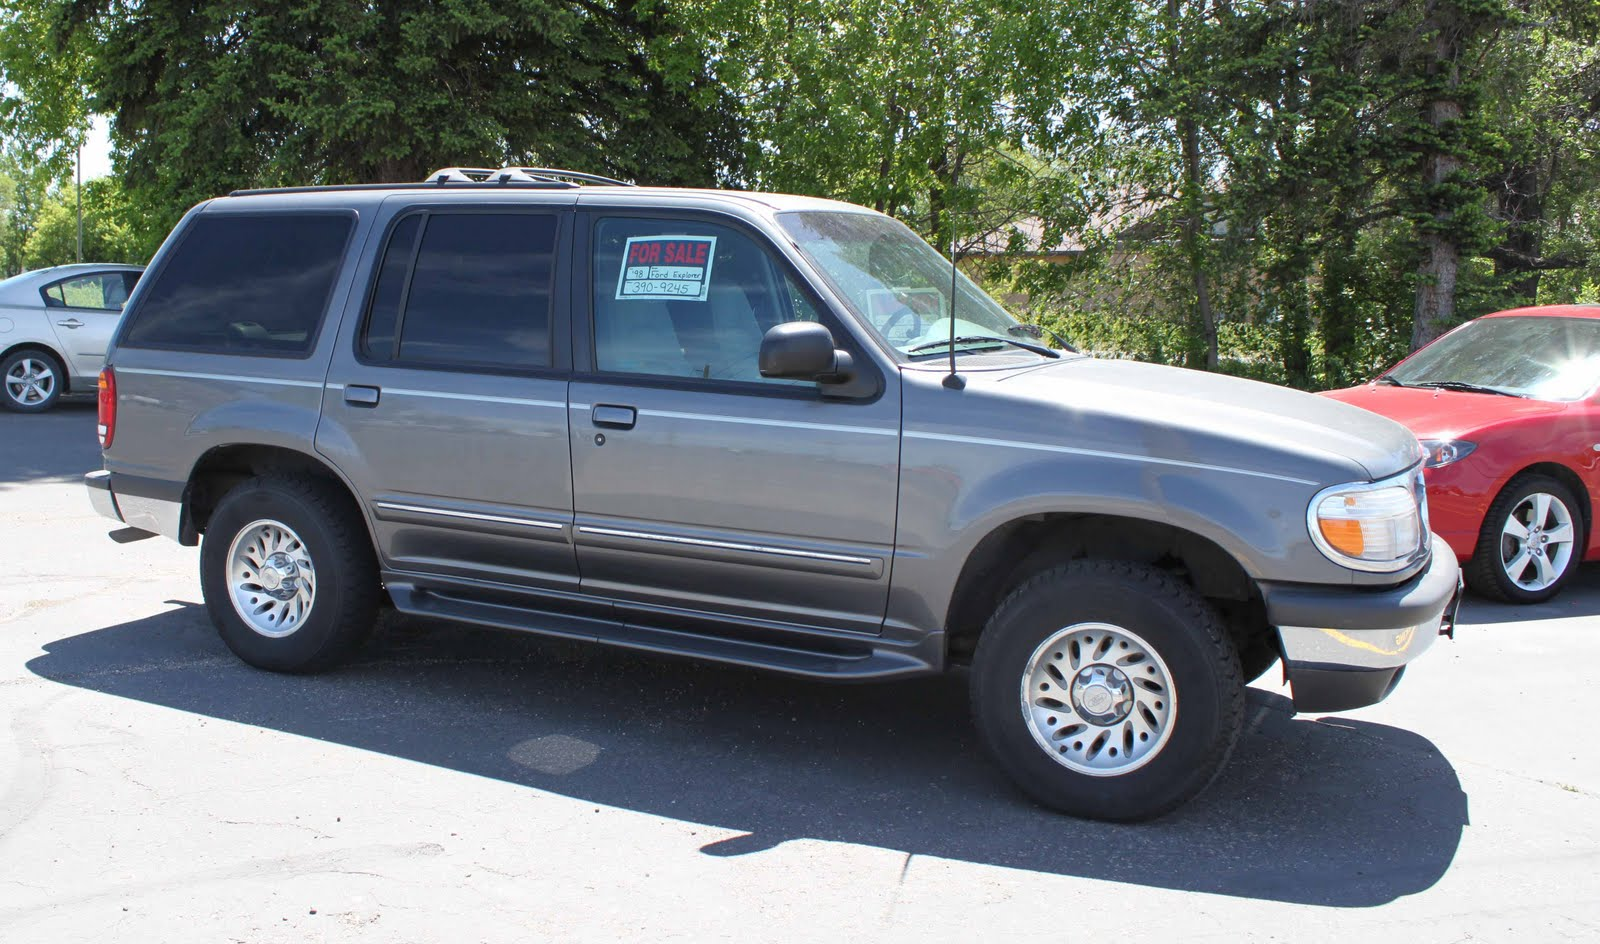 millssale 1998 ford explorer xlt 4000 obo. Black Bedroom Furniture Sets. Home Design Ideas